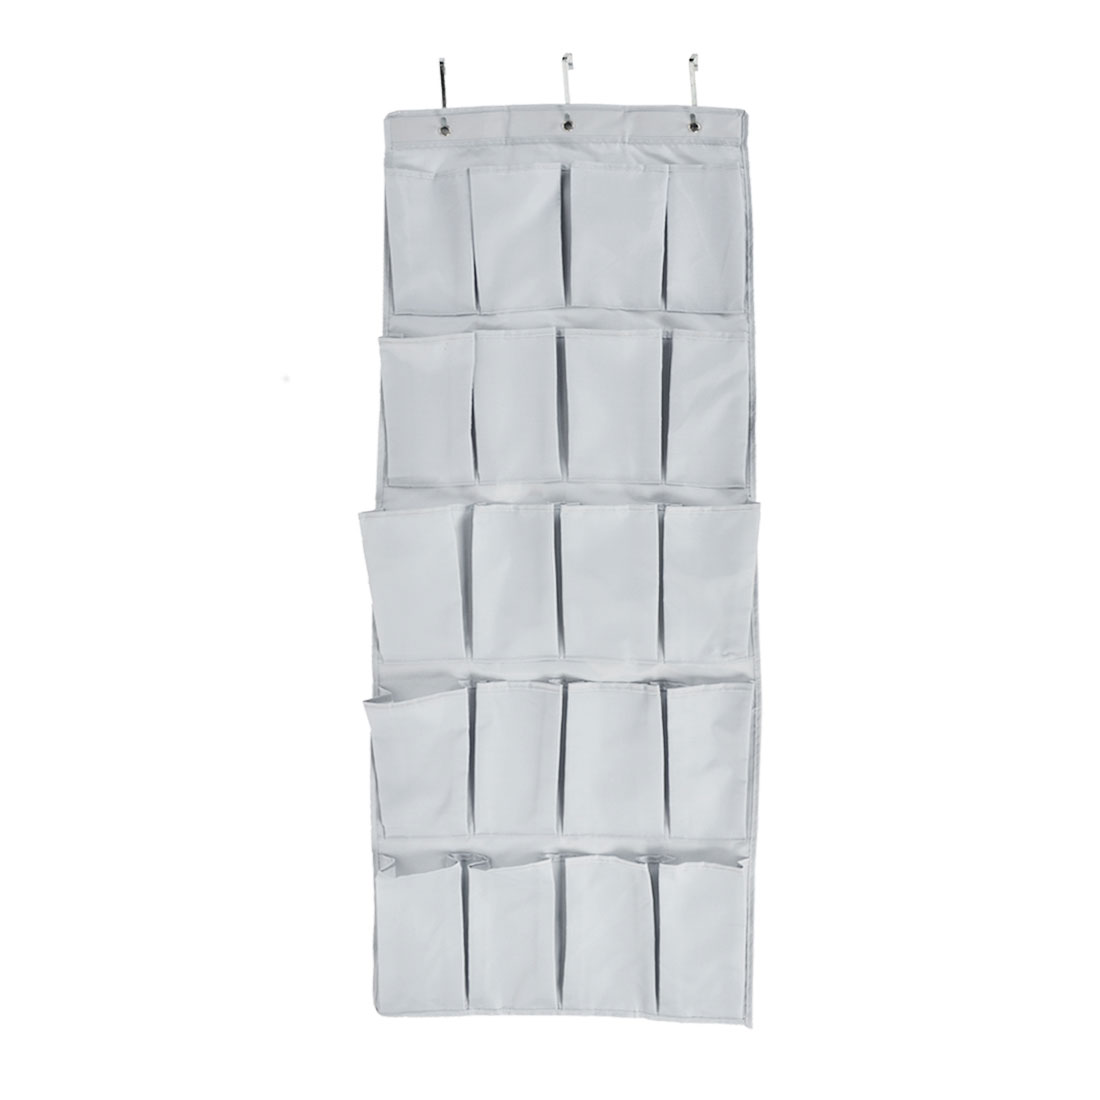 Wall Door Closet 20 Pockets Hanging Storage Bag Case Organizer Gray